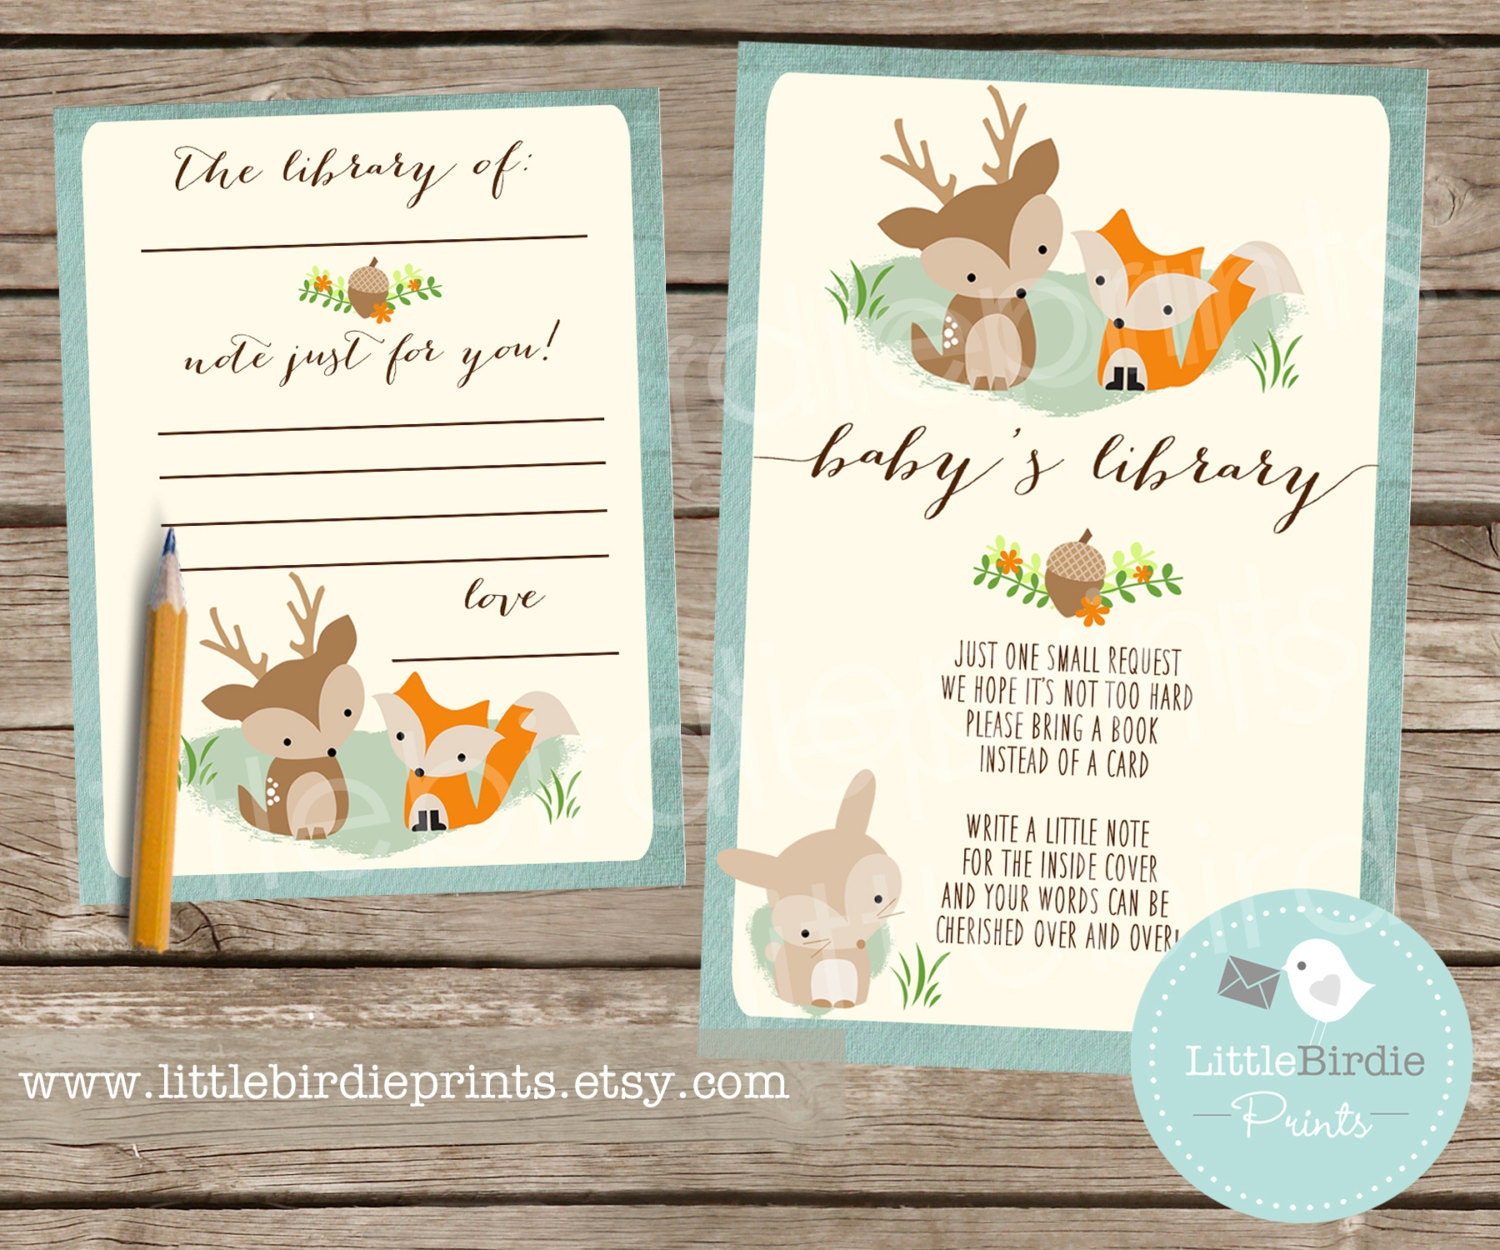 Baby Book Ideas: WOODLAND Baby Shower Book Instead Of A Card By